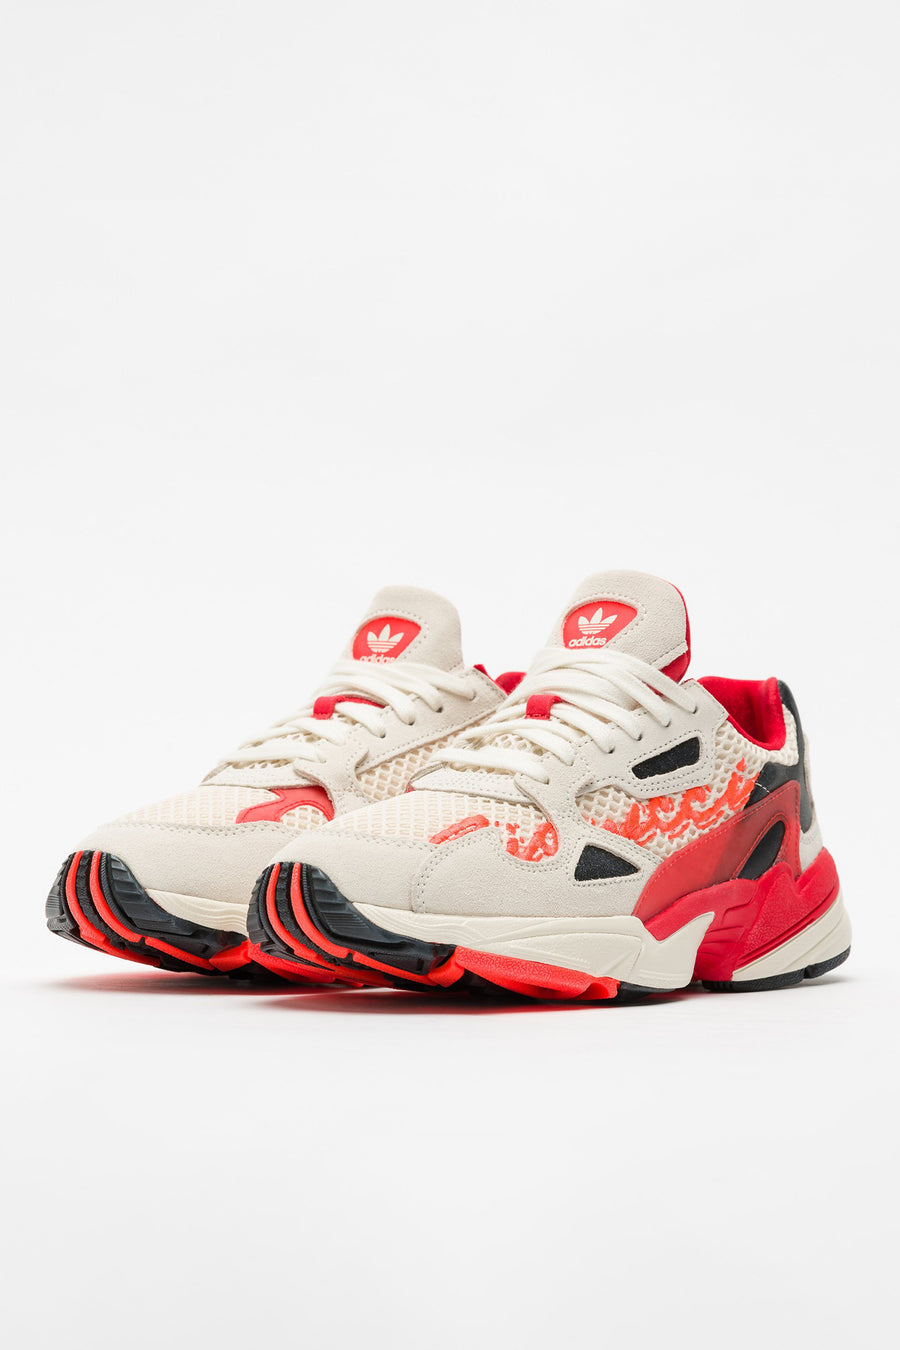 adidas Fiorucci Falcon W in Off White/Red/Orange - Notre